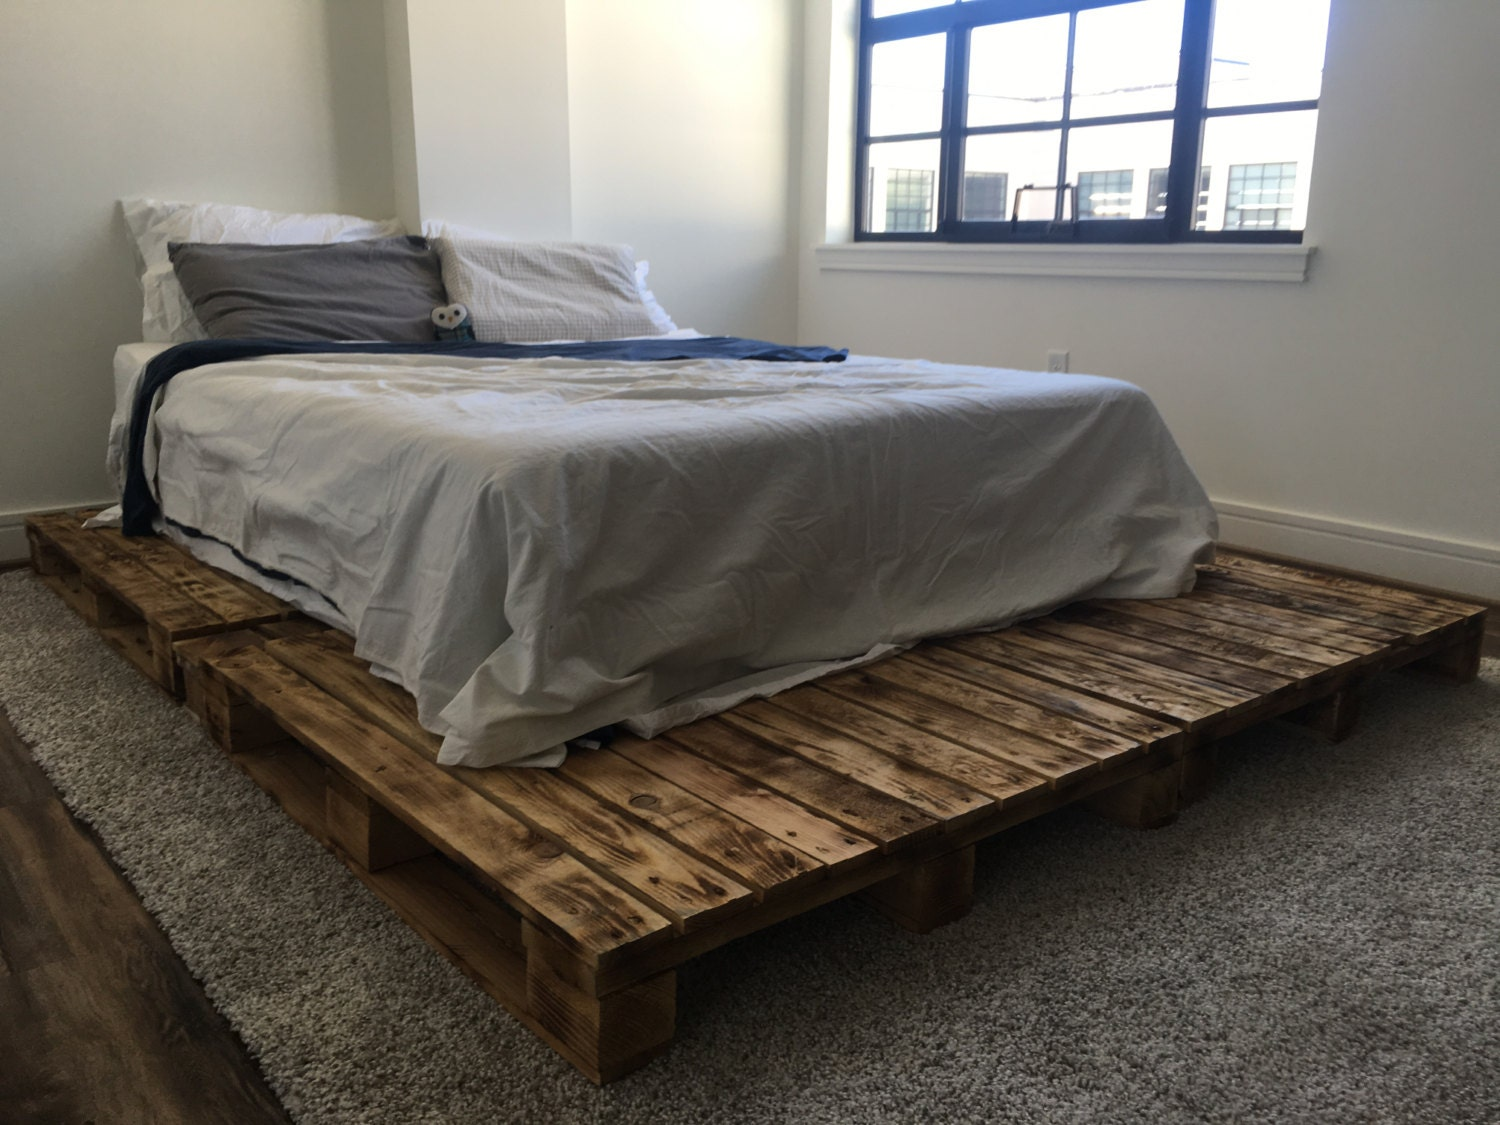 pallet platform bed available in queen king full twin size. Black Bedroom Furniture Sets. Home Design Ideas